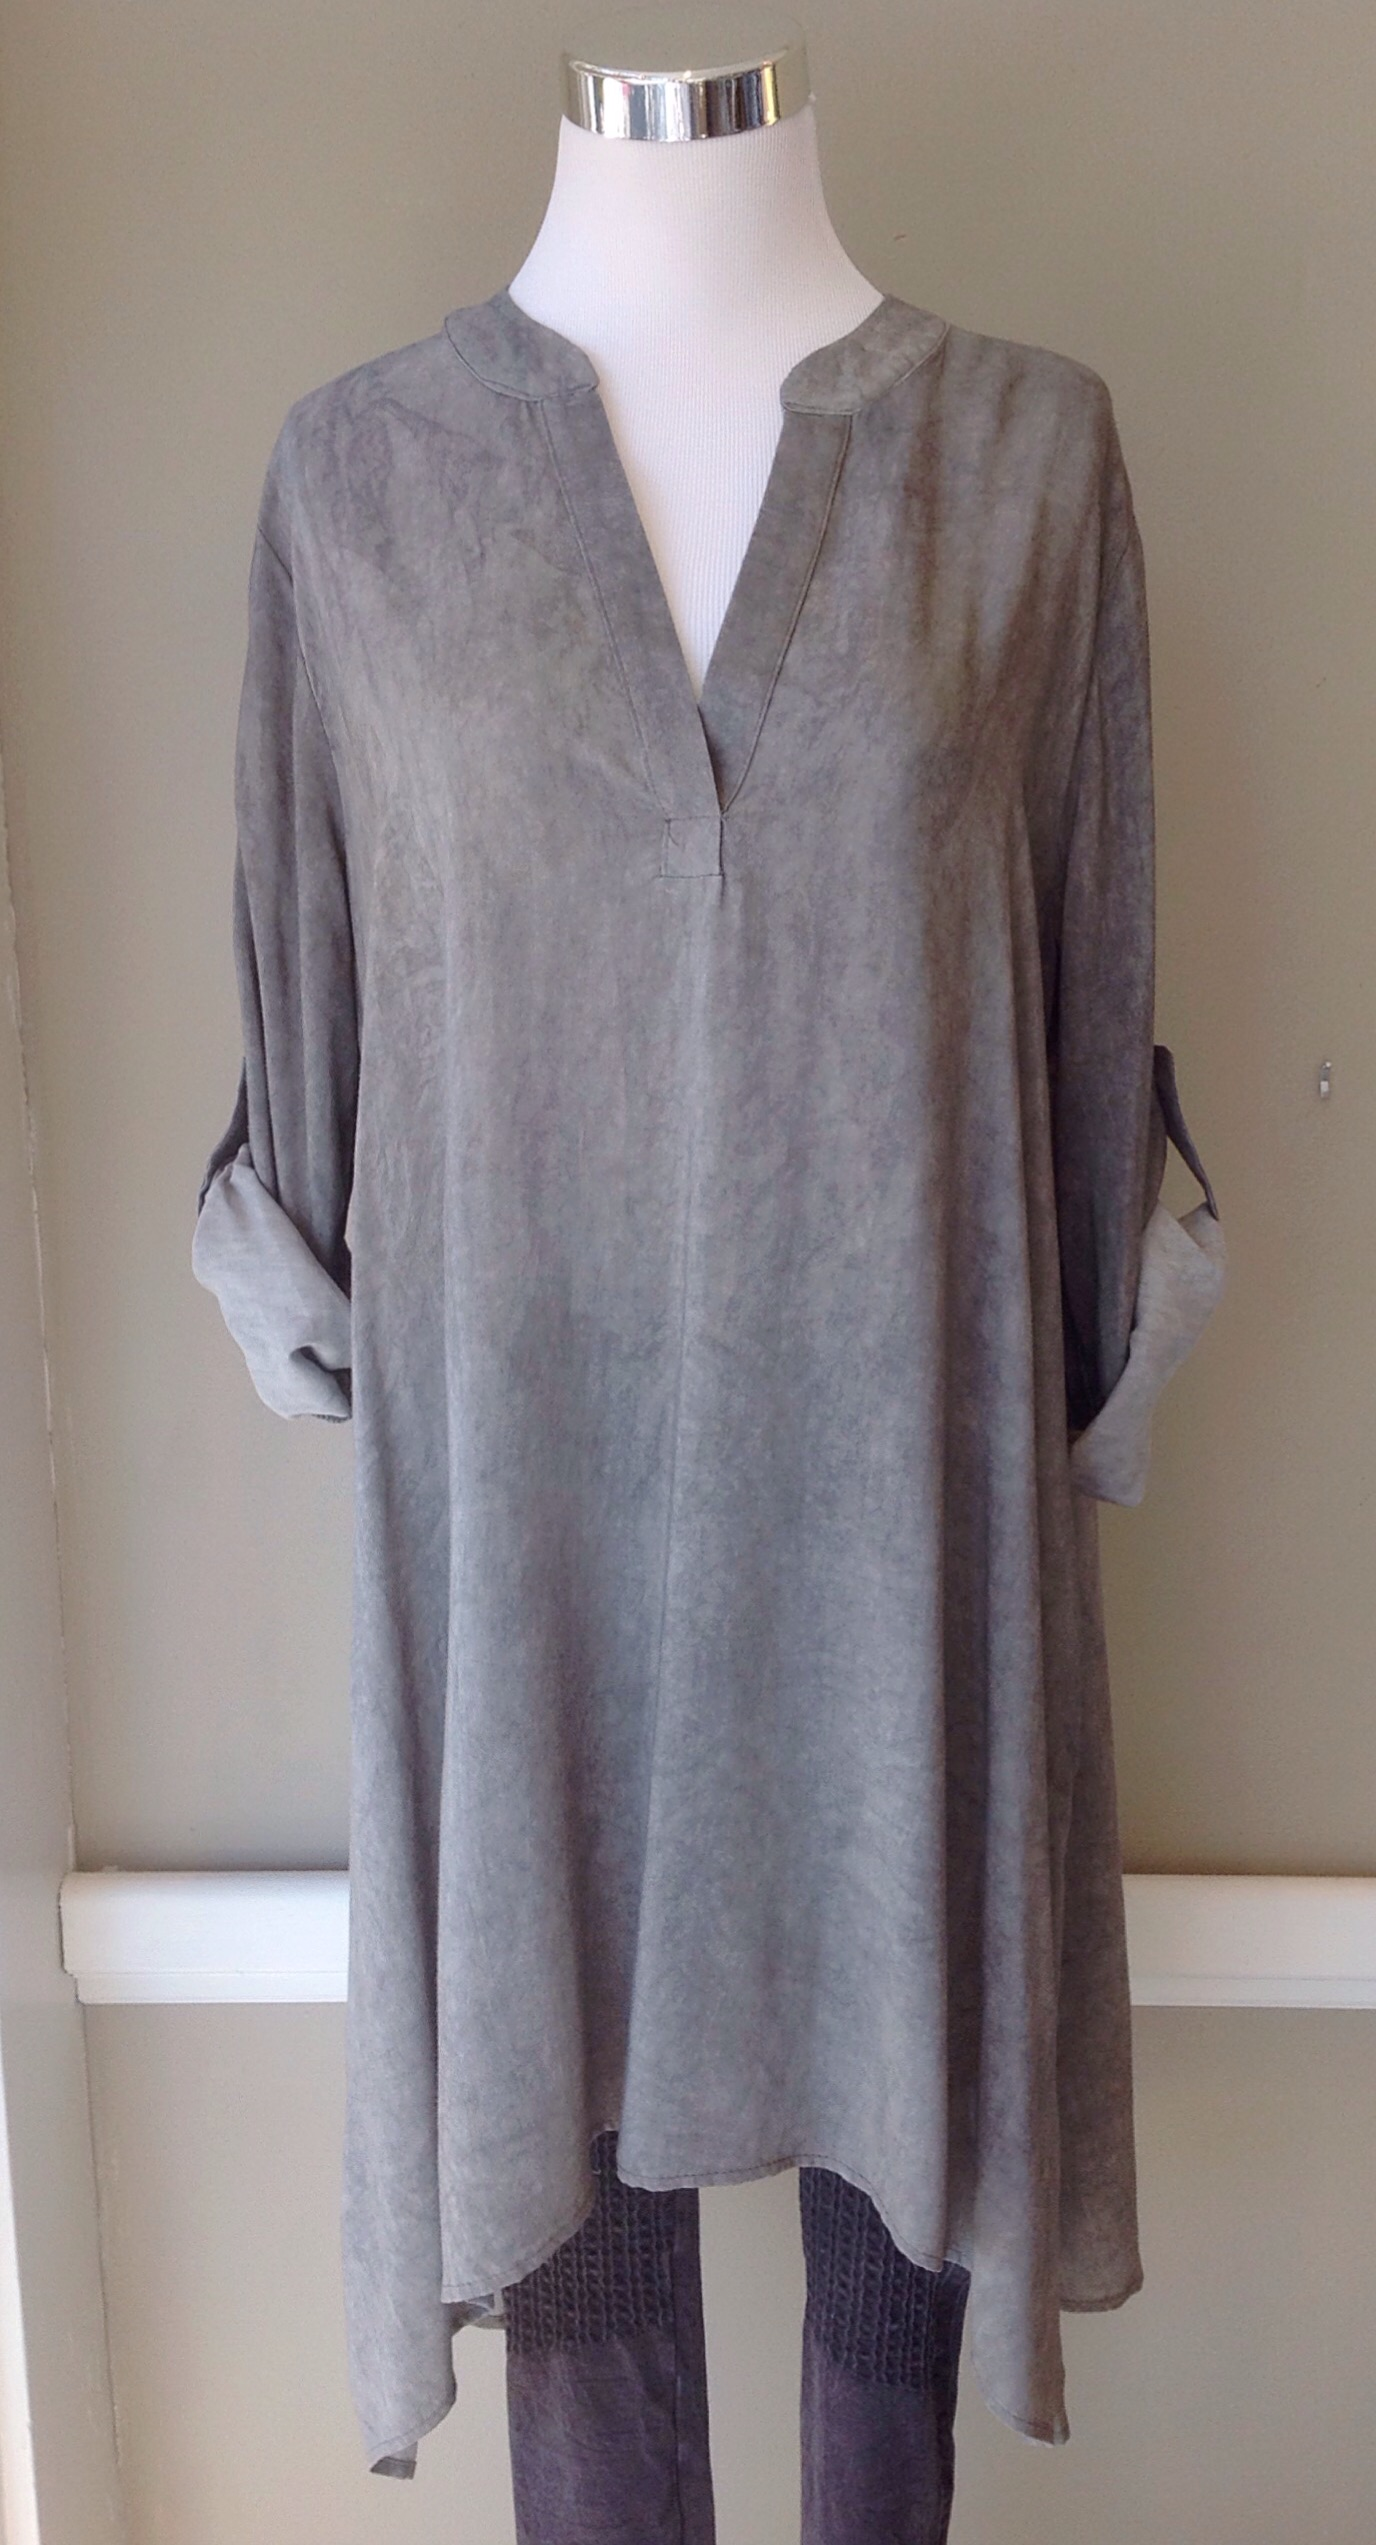 Rayon woven tunic with handkerchief hem and roll tab sleeves, $38